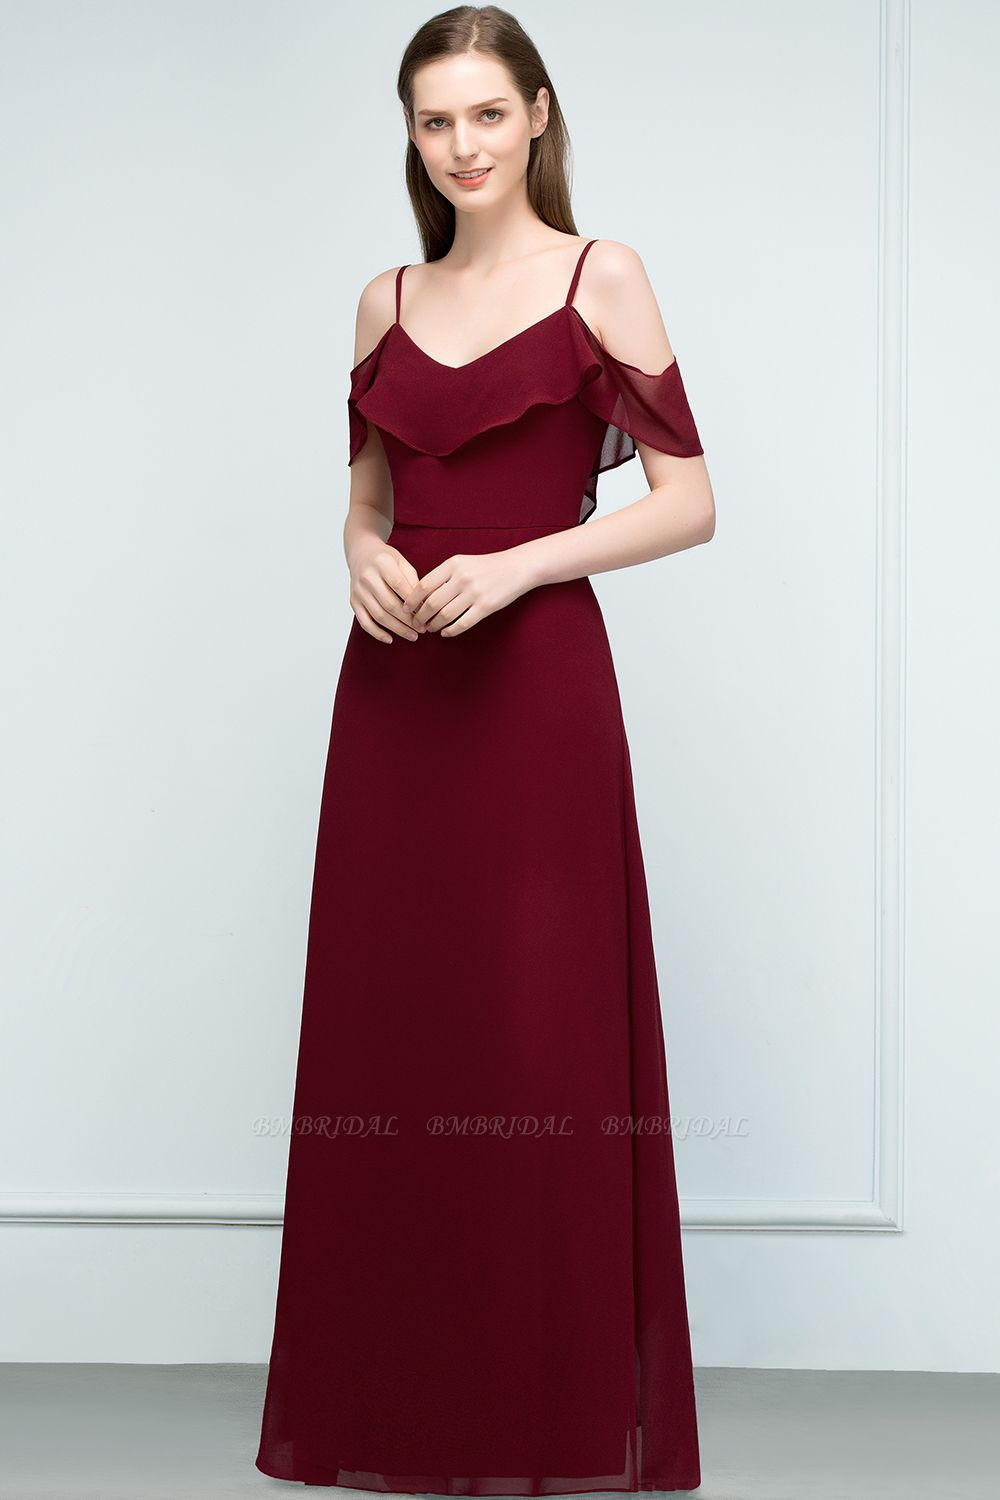 BMbridal Affordable A-line Chiffon Off-the-Shoulder V-neck Long Bridesmaid Dress In Stock